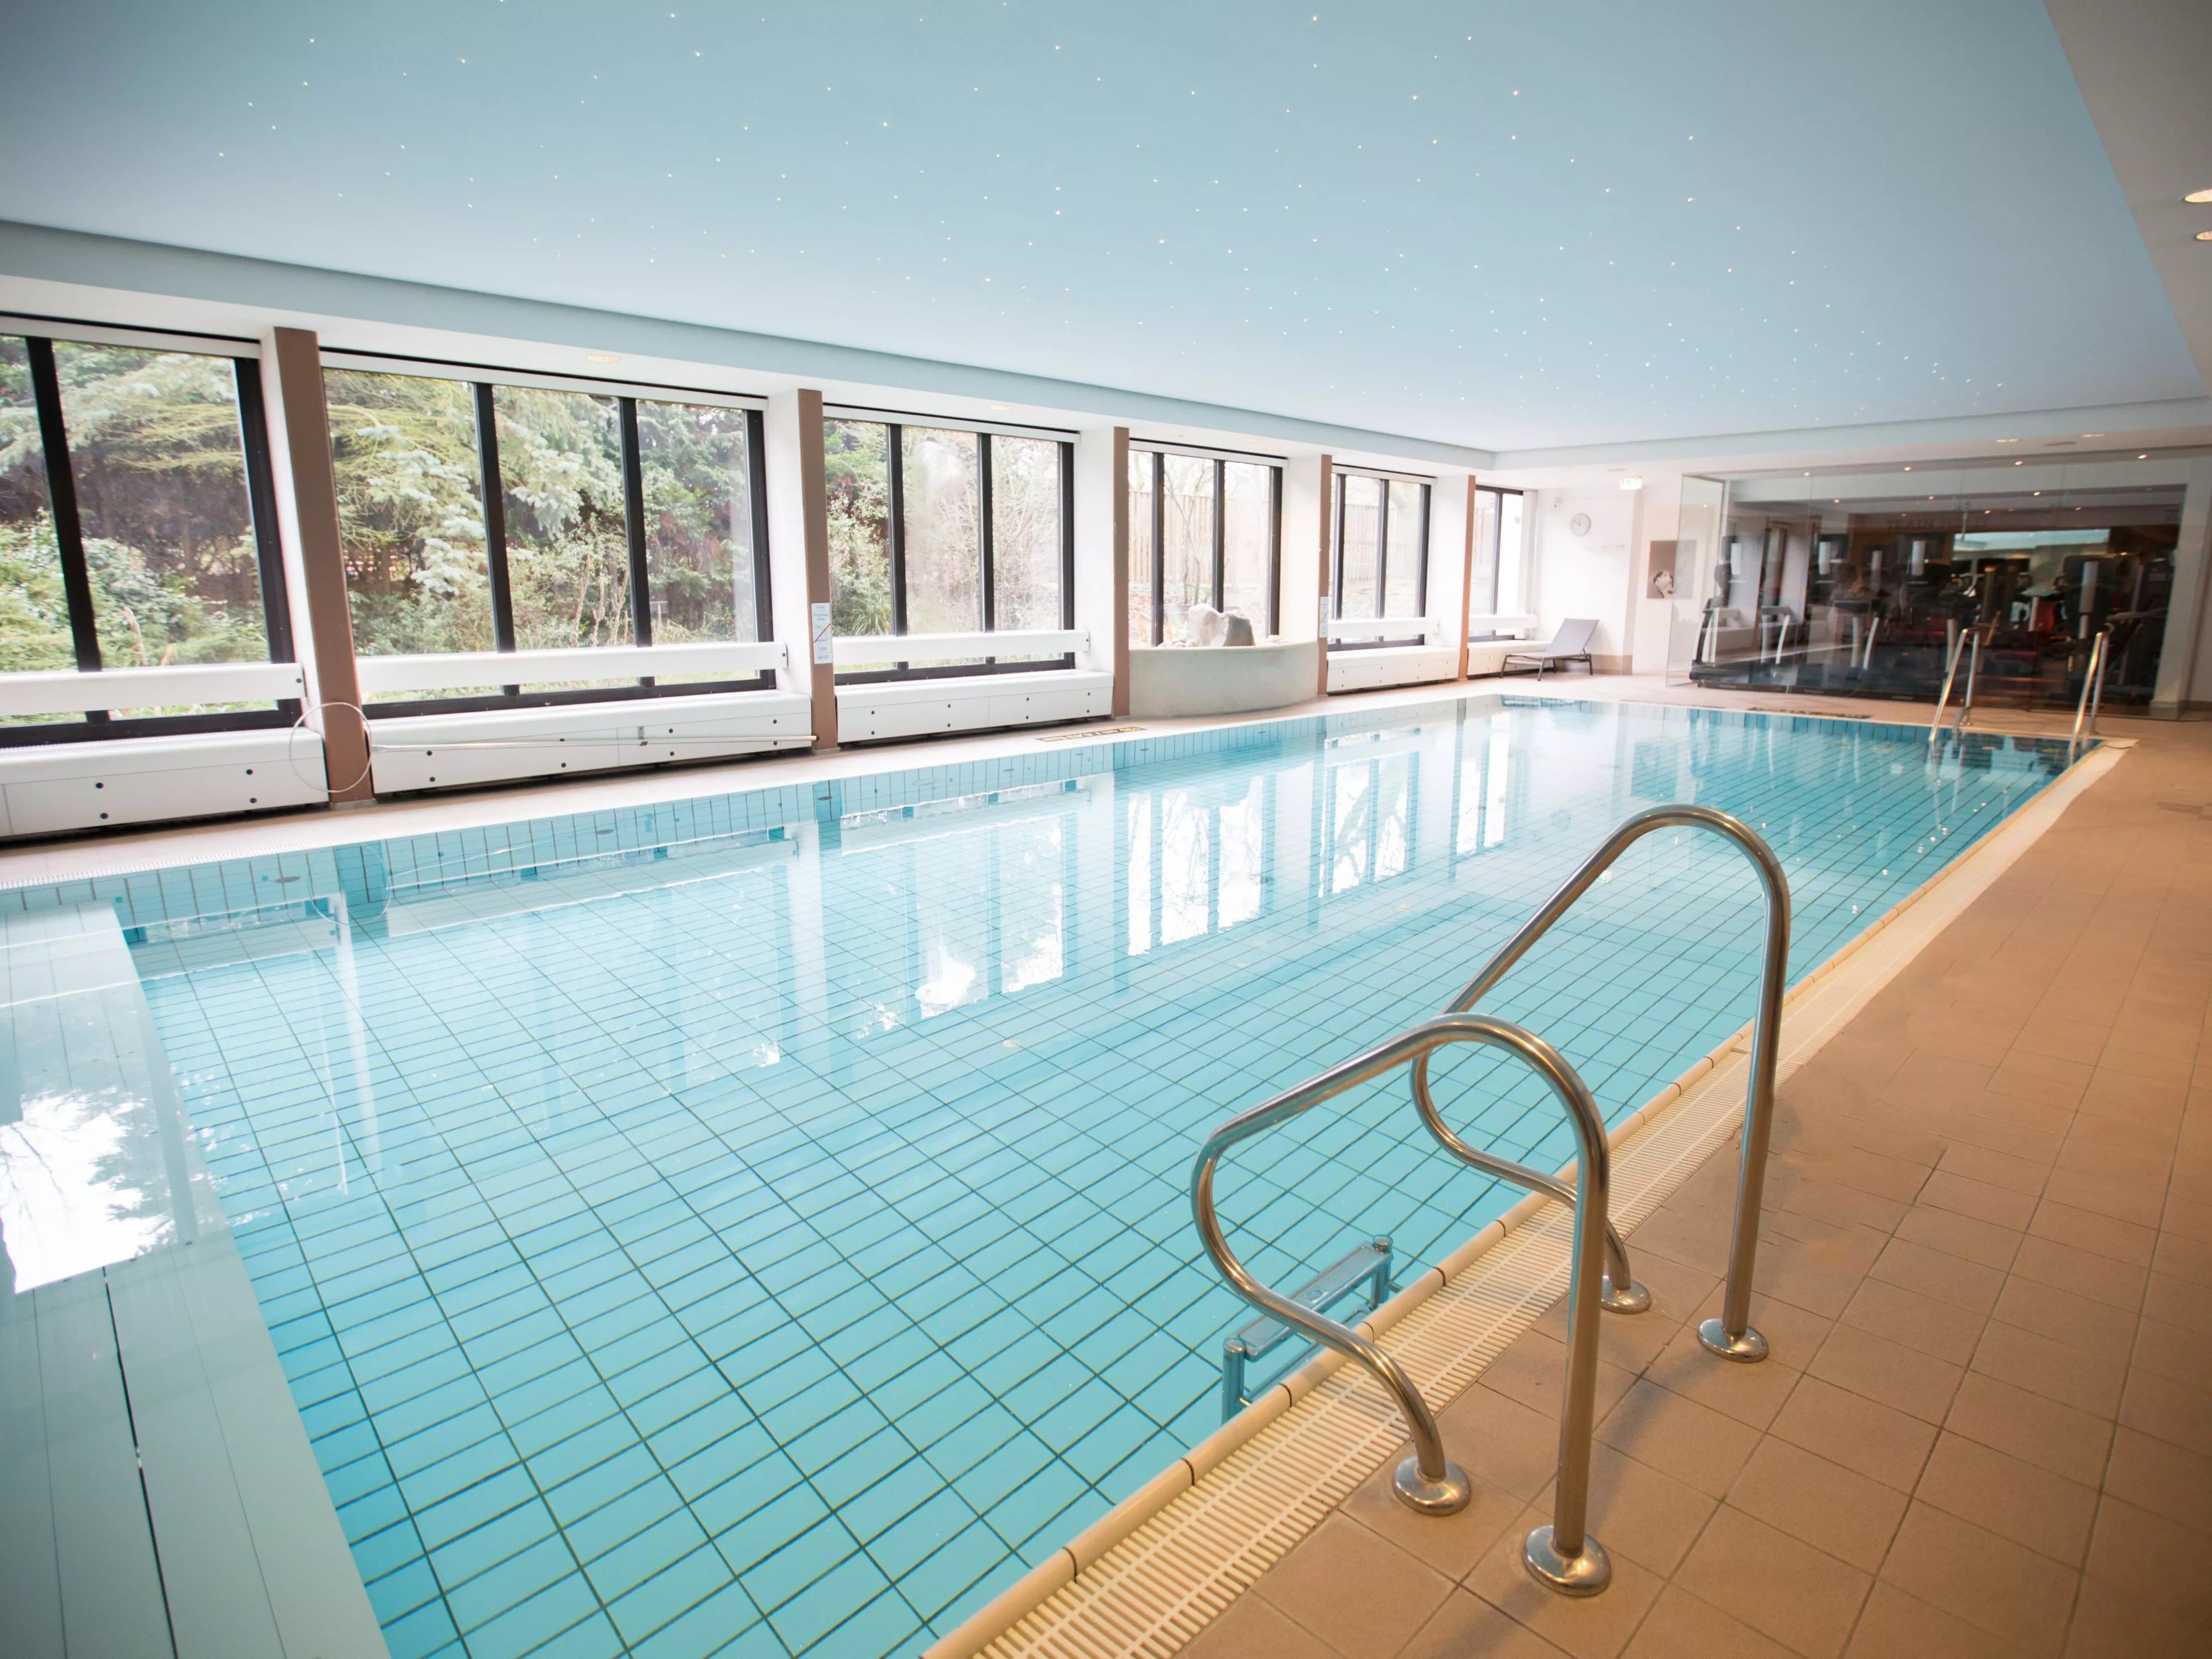 Swimming Pool Frankfurt Plaza Frankfurt Congress Hotel مرافق الصحة واللياقة